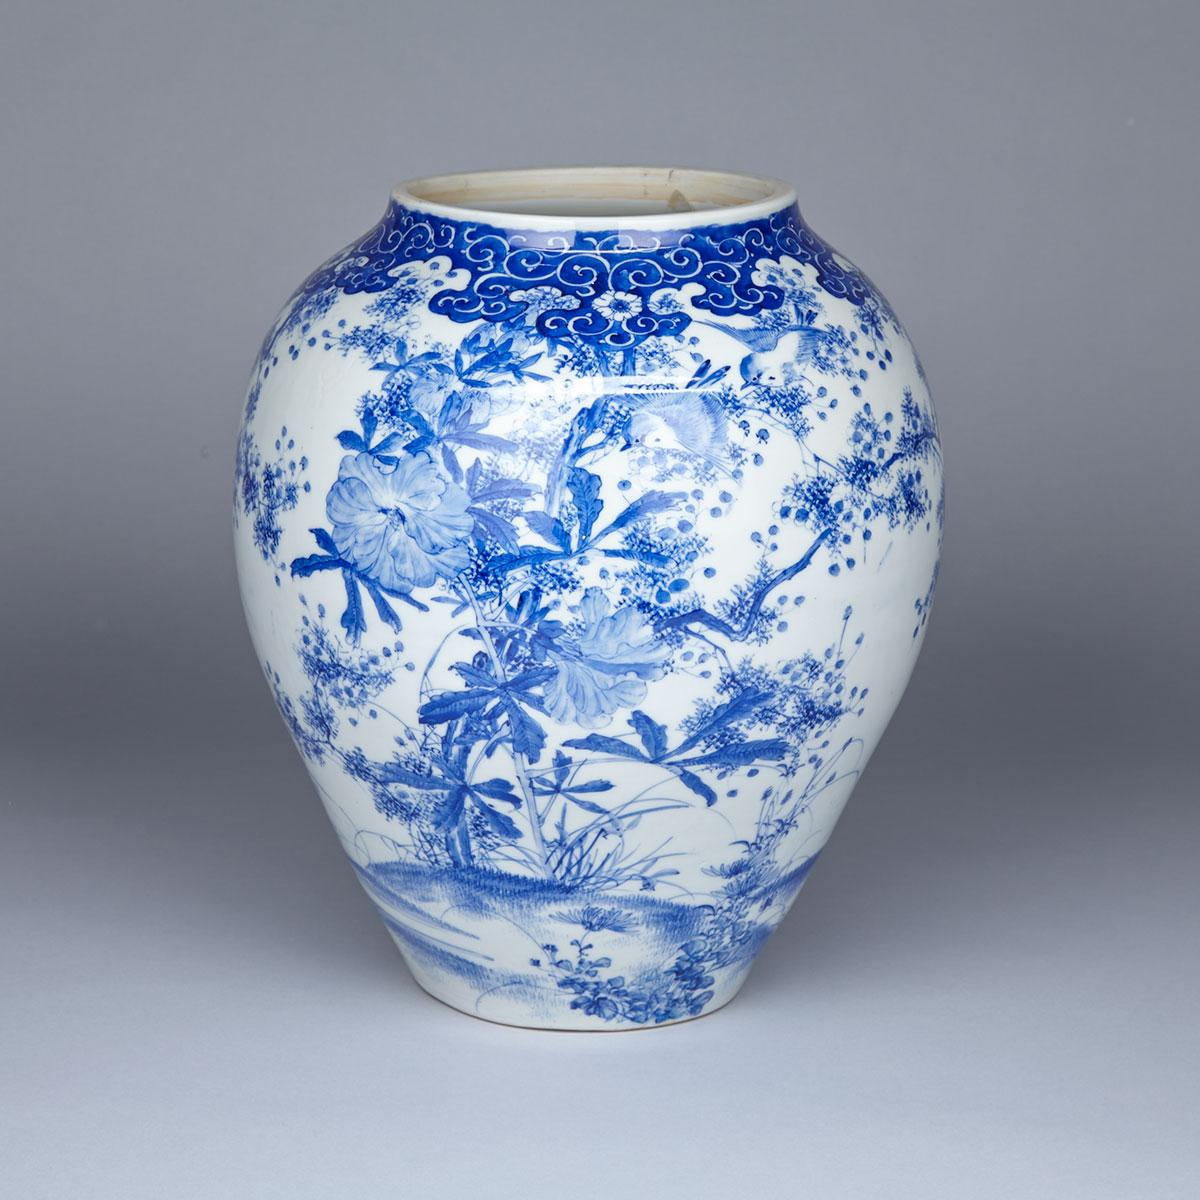 Large Blue and White Arita Floral Jar, Meiji Period, 19th Century